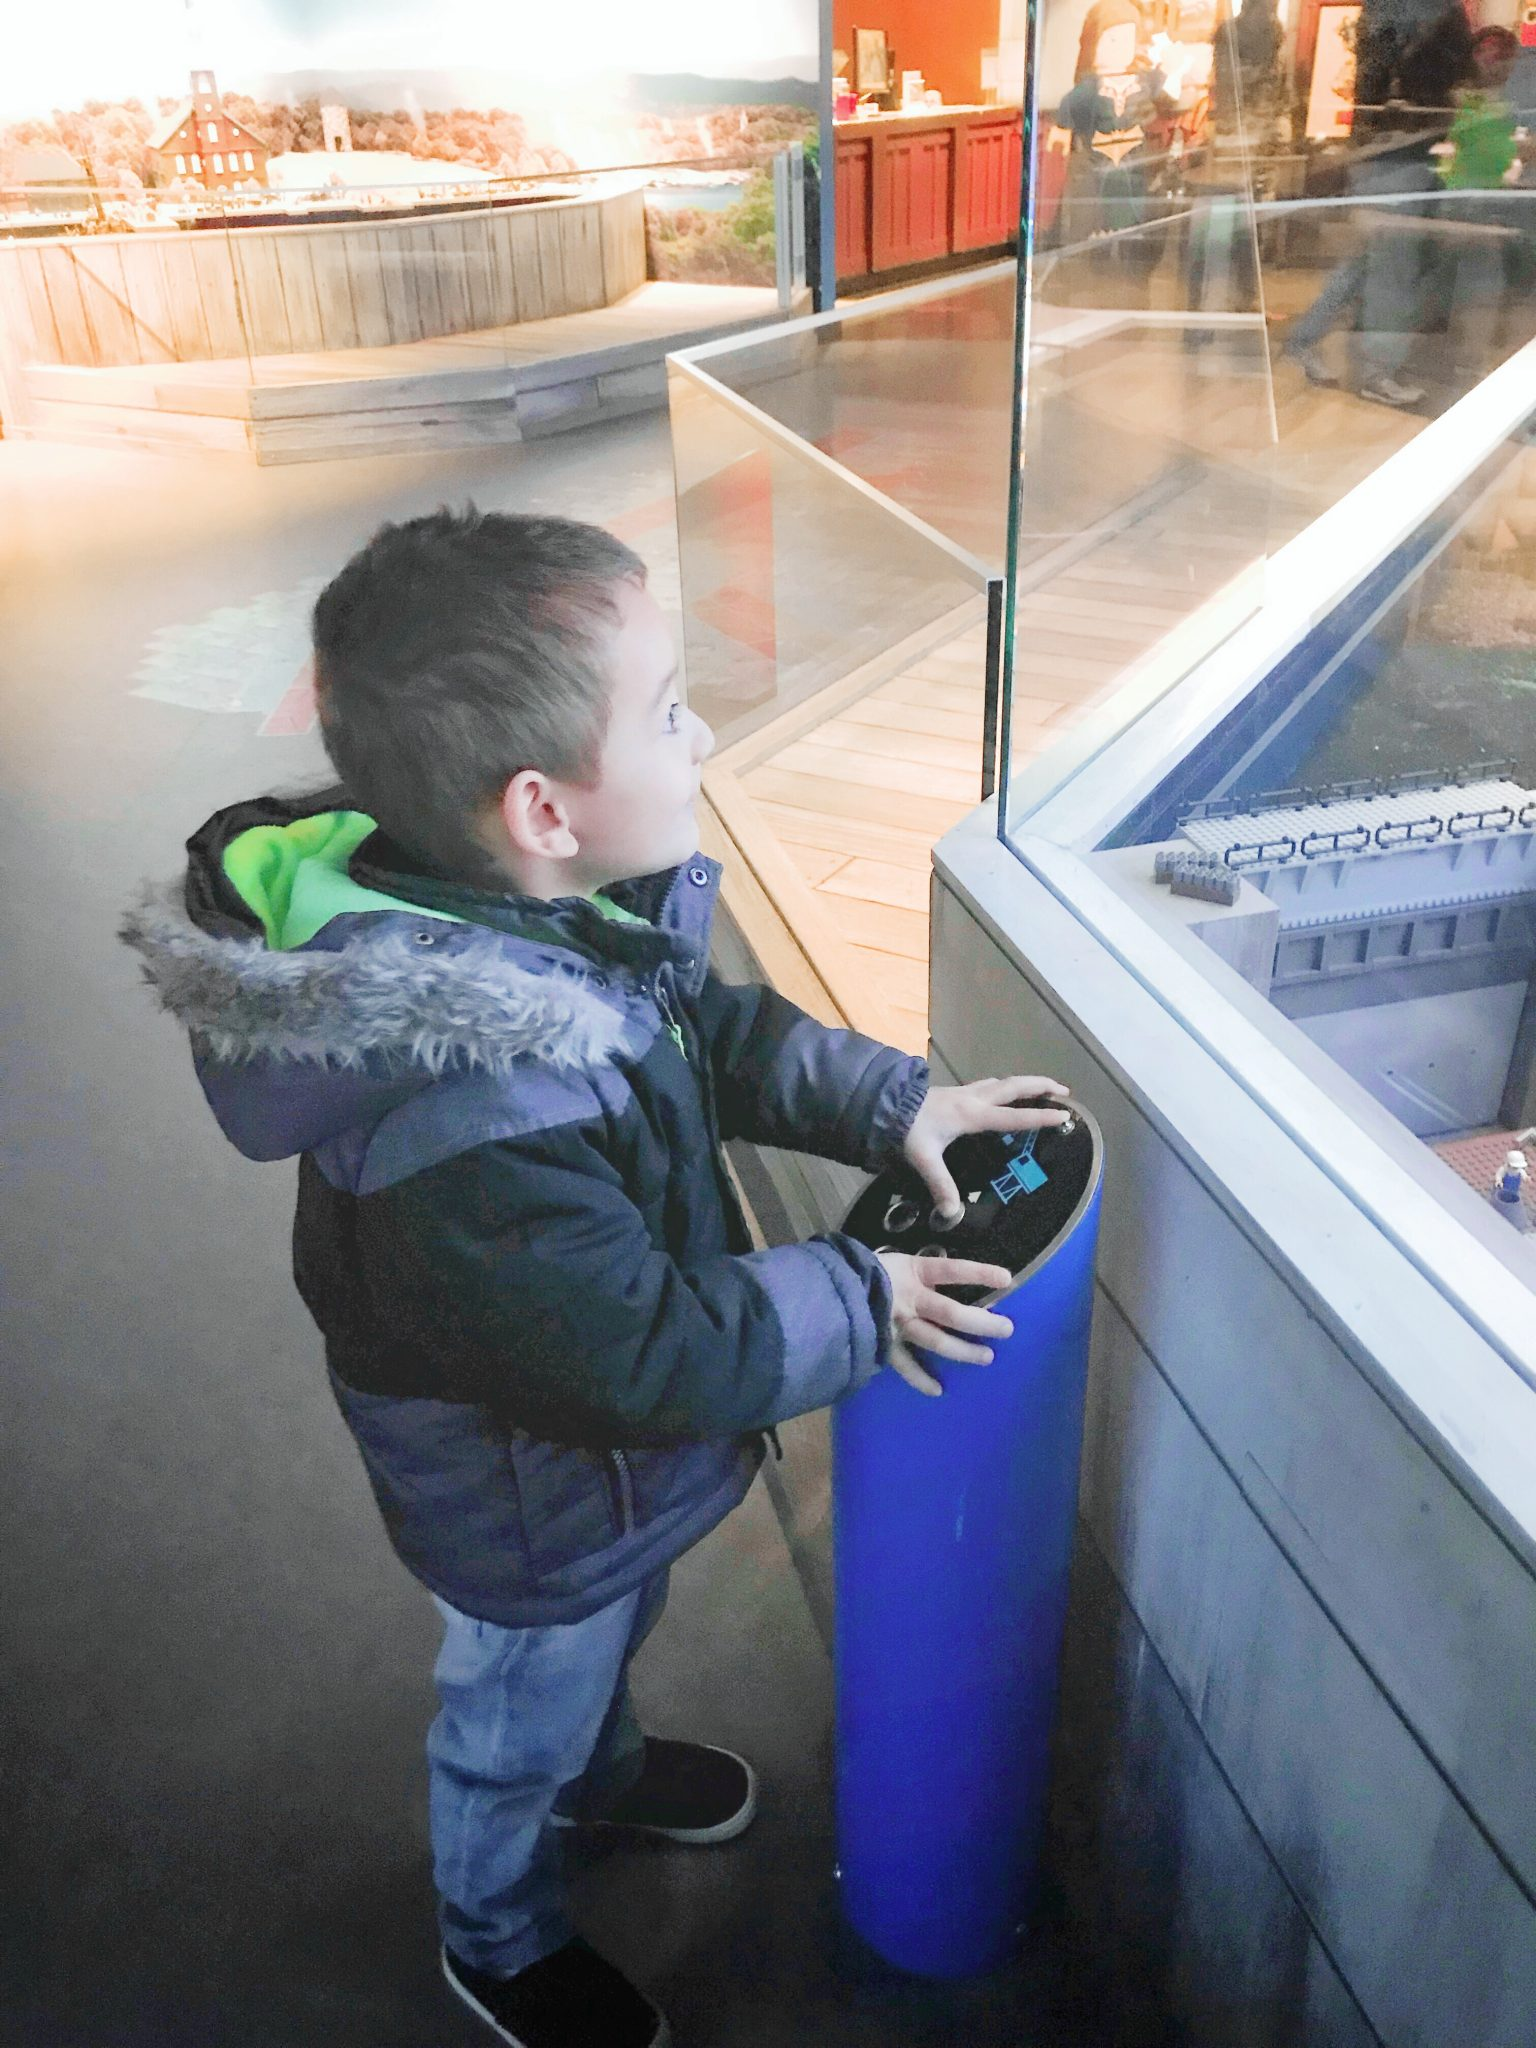 10 Tips For Visiting Legoland Discovery Center Boston For The First Time